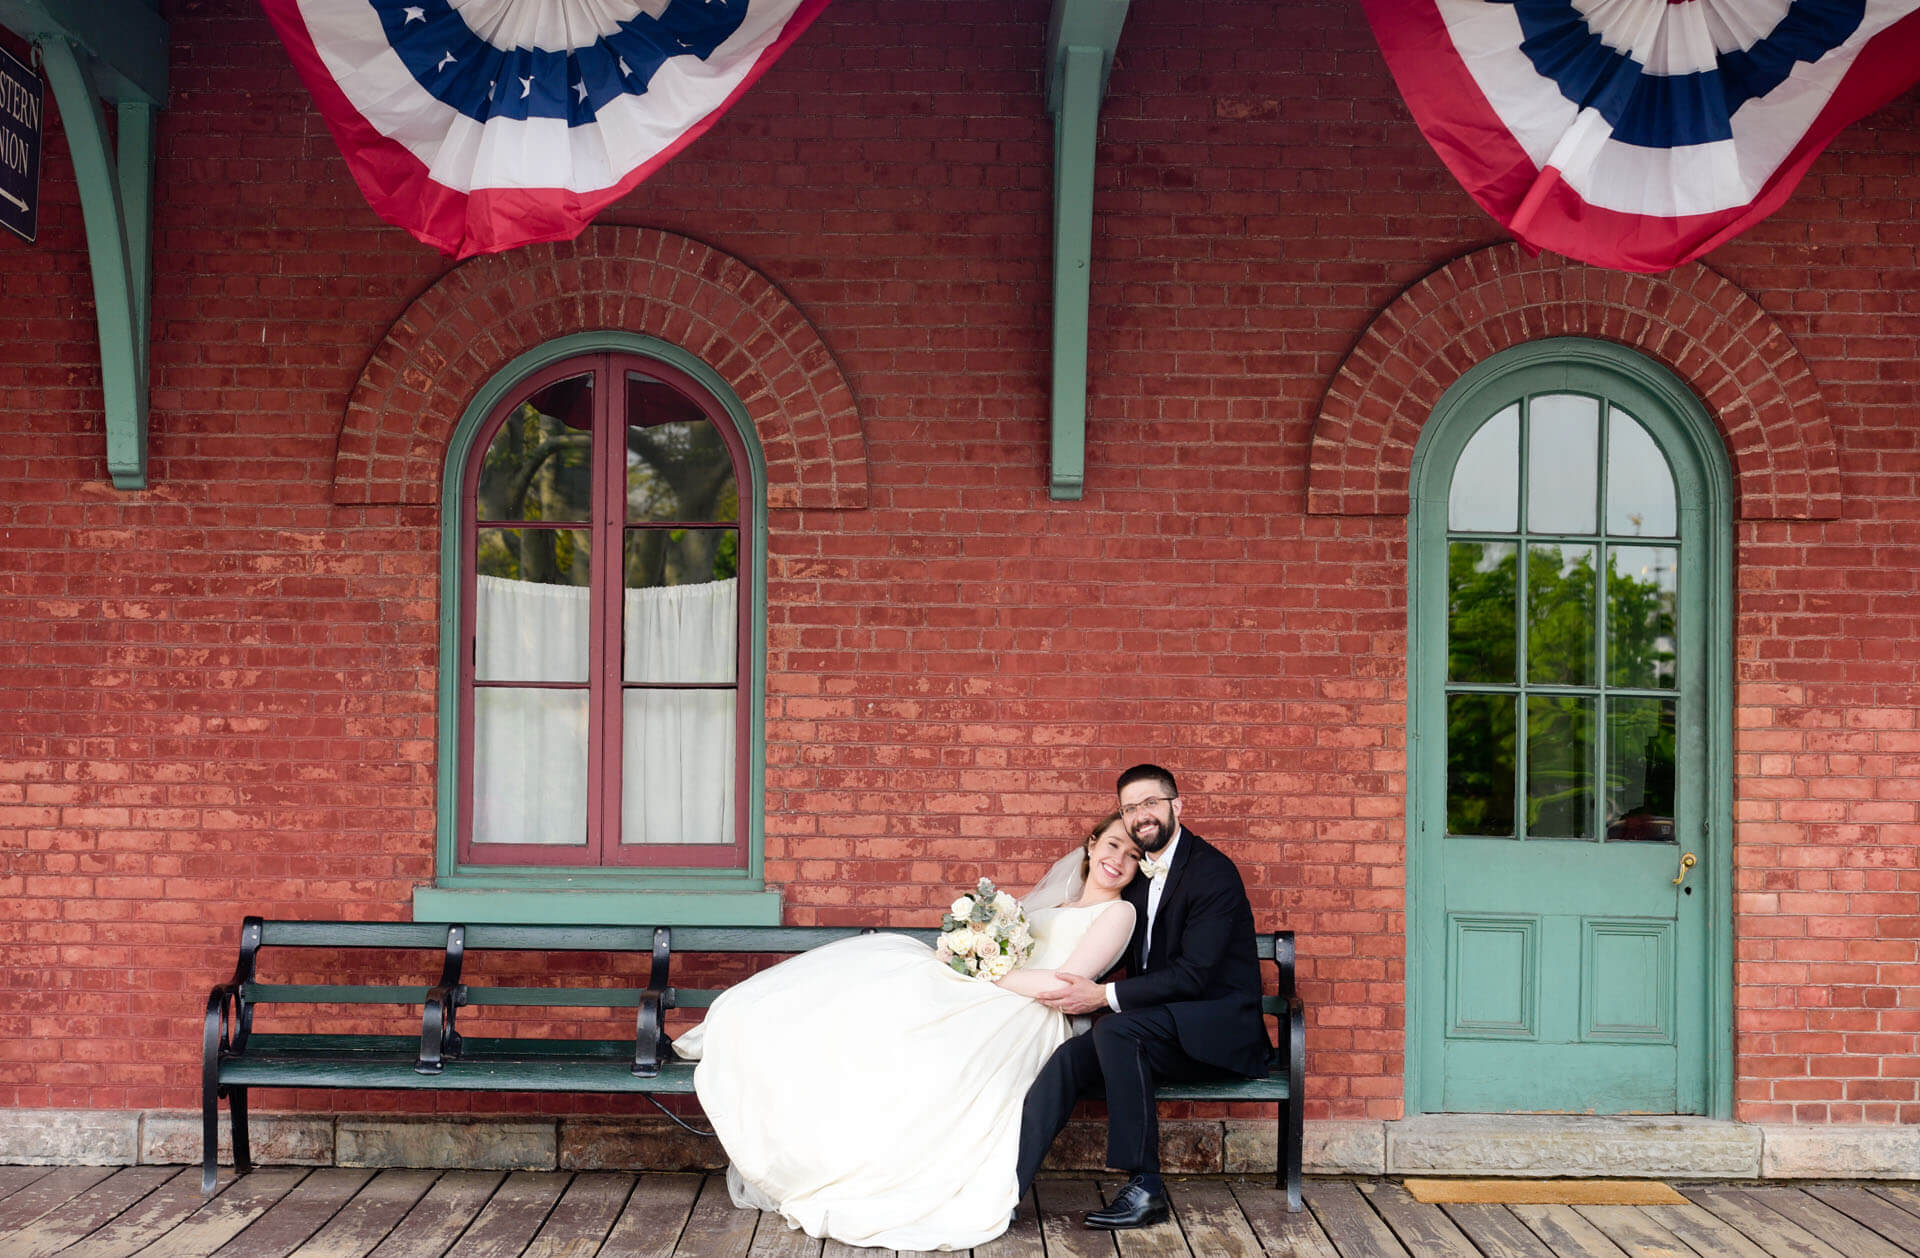 Epic Wedding portrait showing the bride and groom stretched out at the train station at the Greenfield Village in Spring with her husband after their wedding in Dearborn, Michigan.